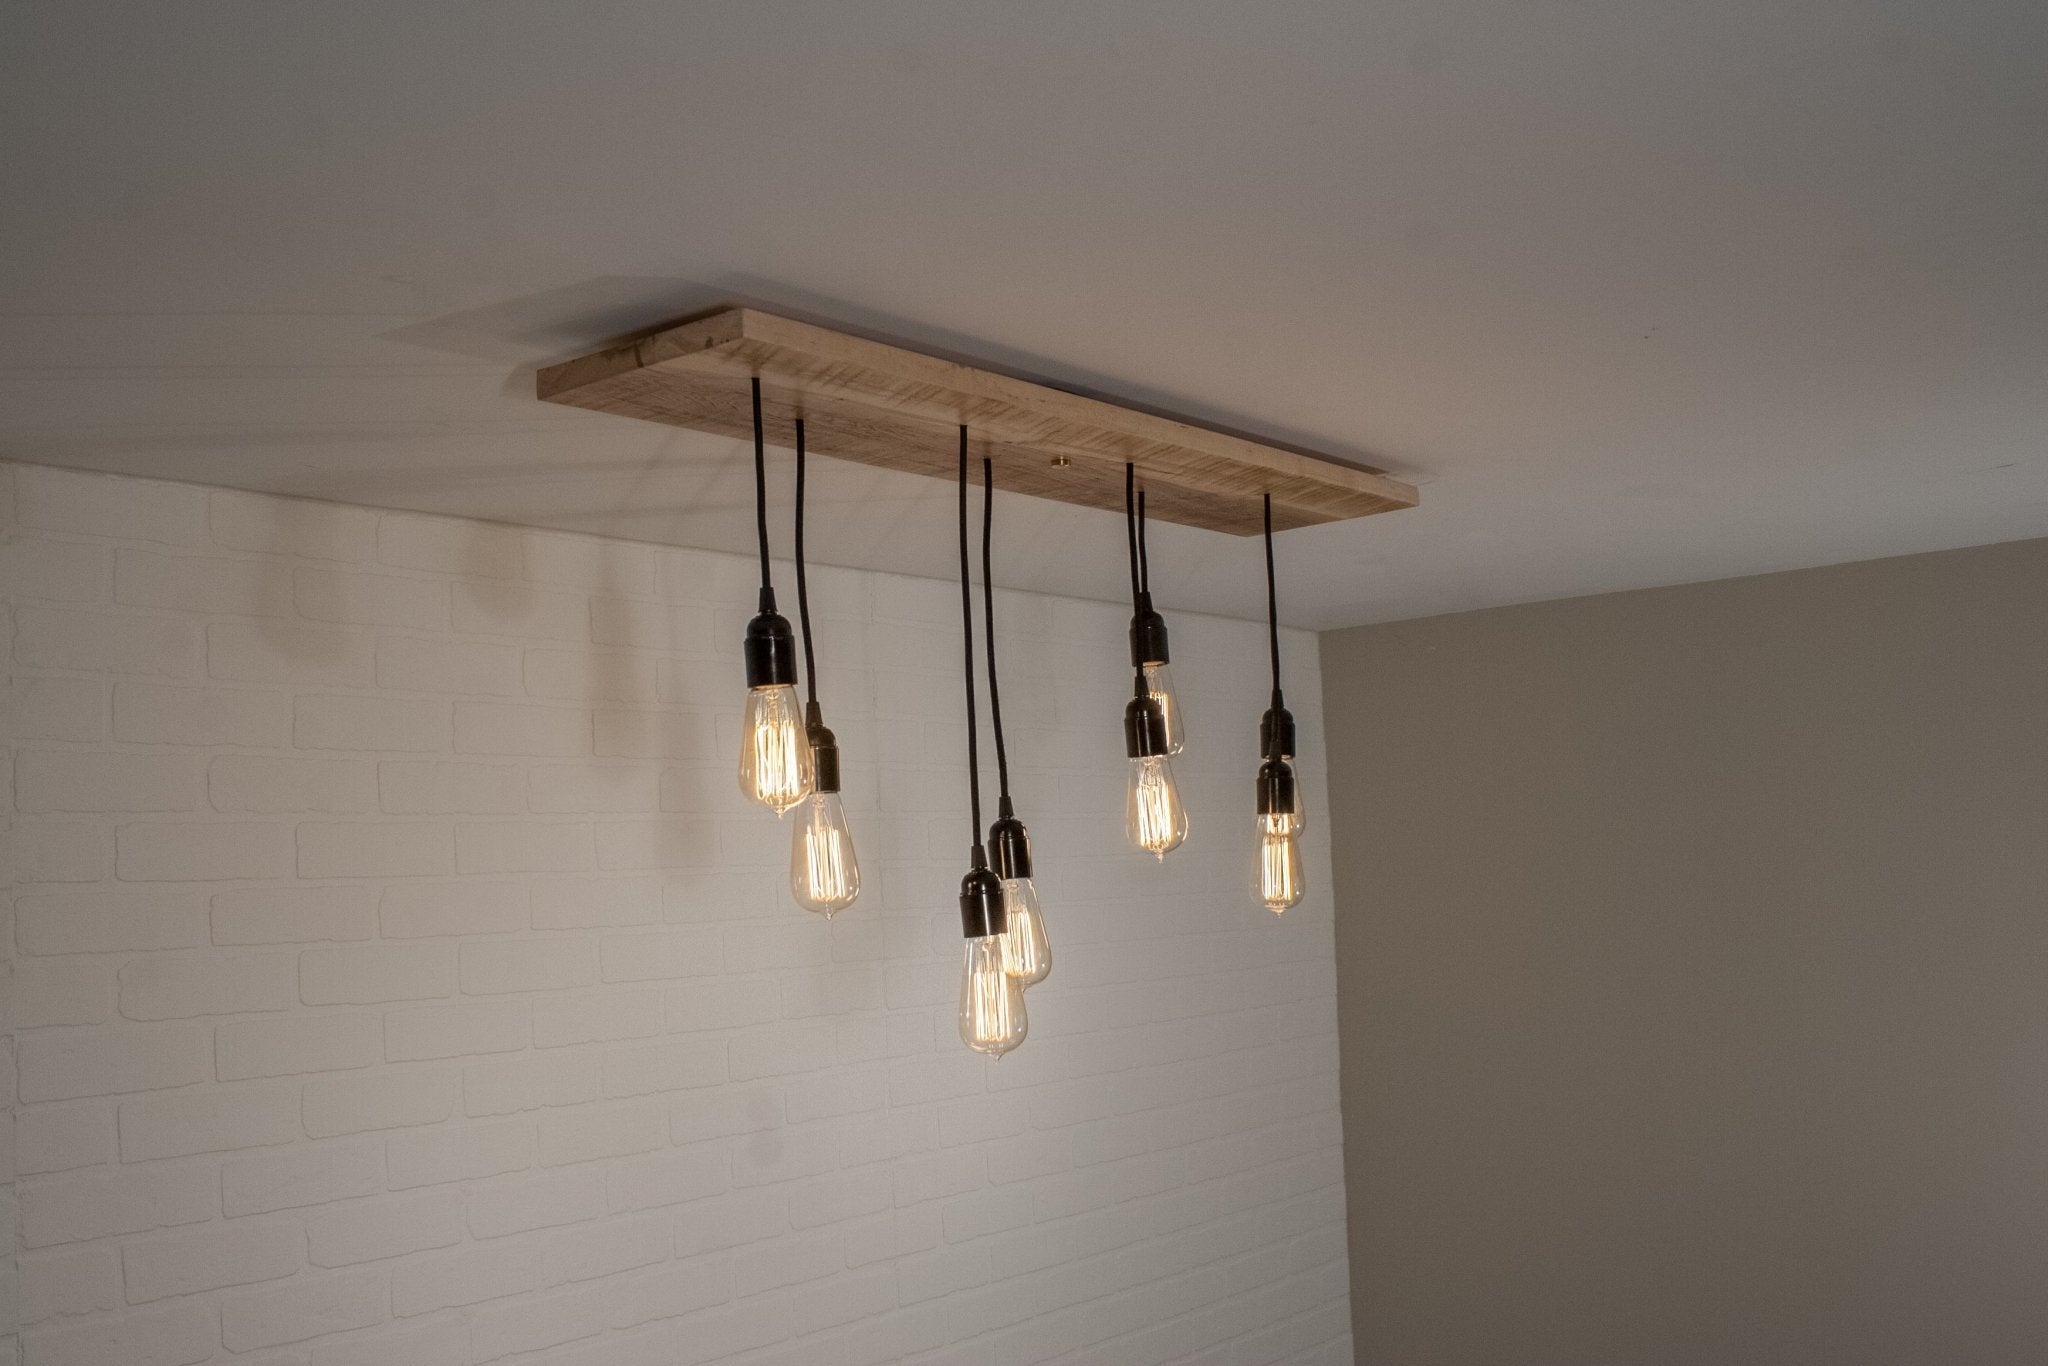 8 Pendant Wood Dining Room Light - Loewen Design Studios